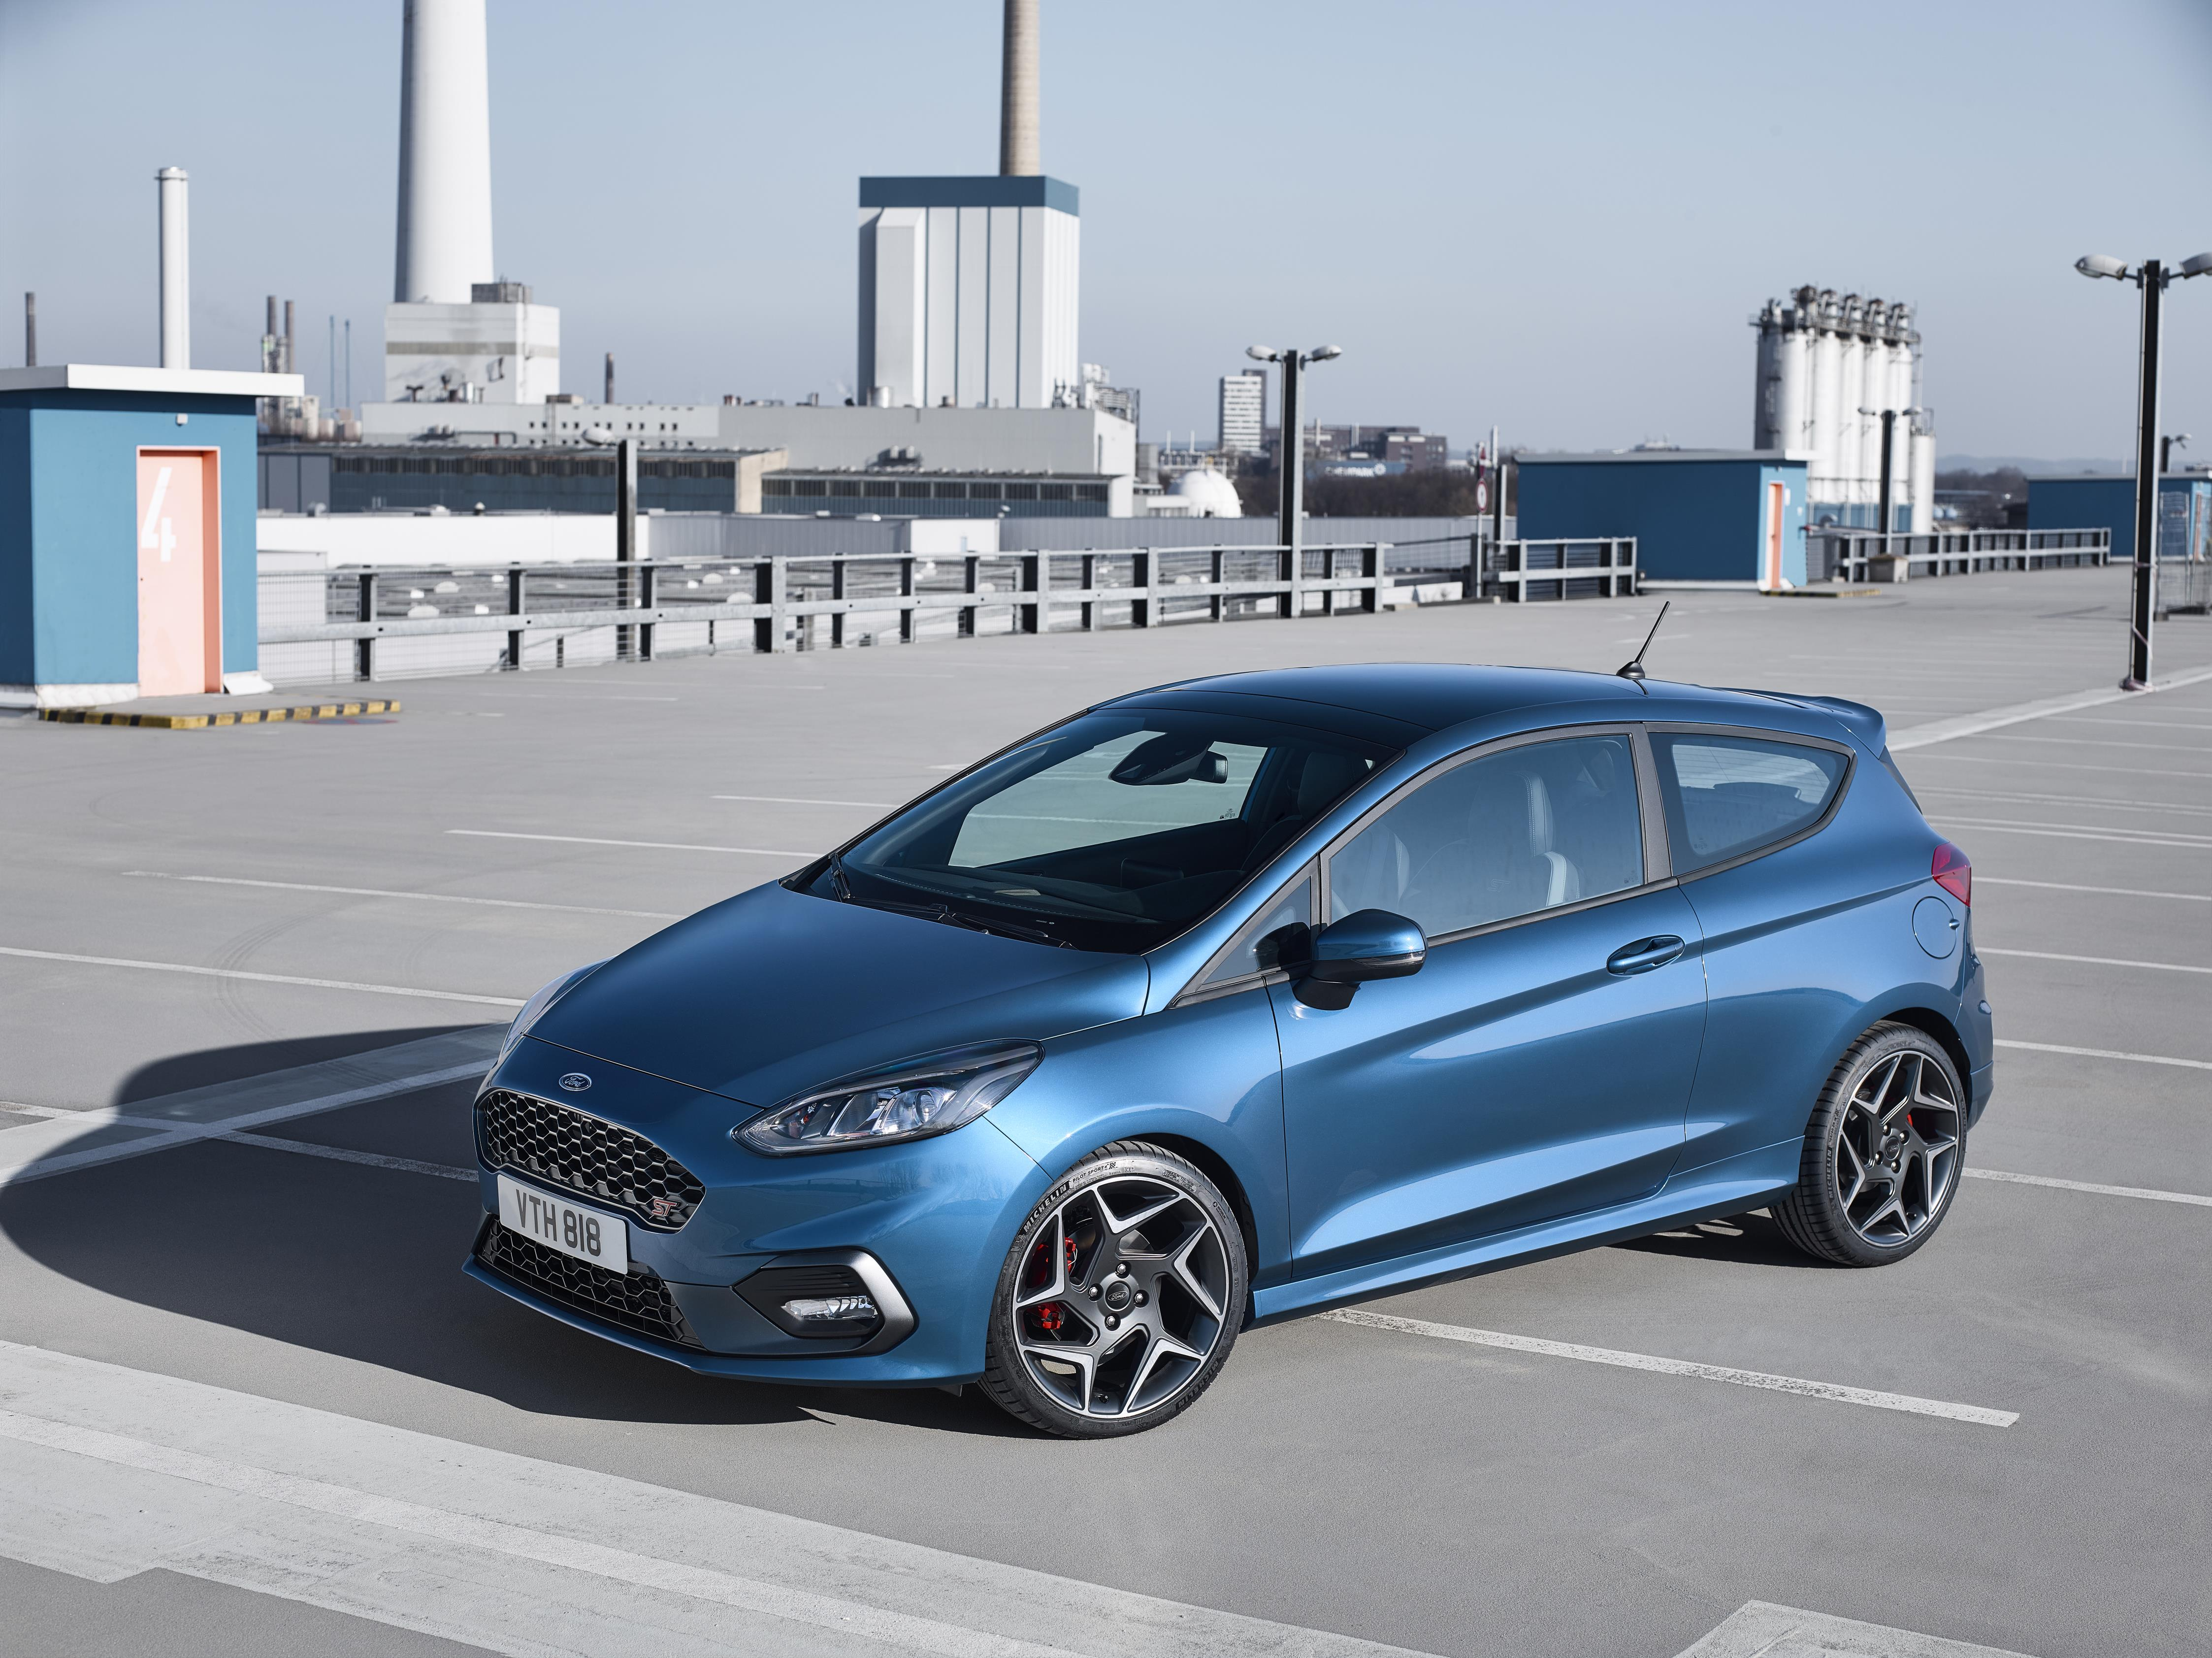 Ford Fiesta Mk8 Won't Arrive In The U.S. As Subcompact ...